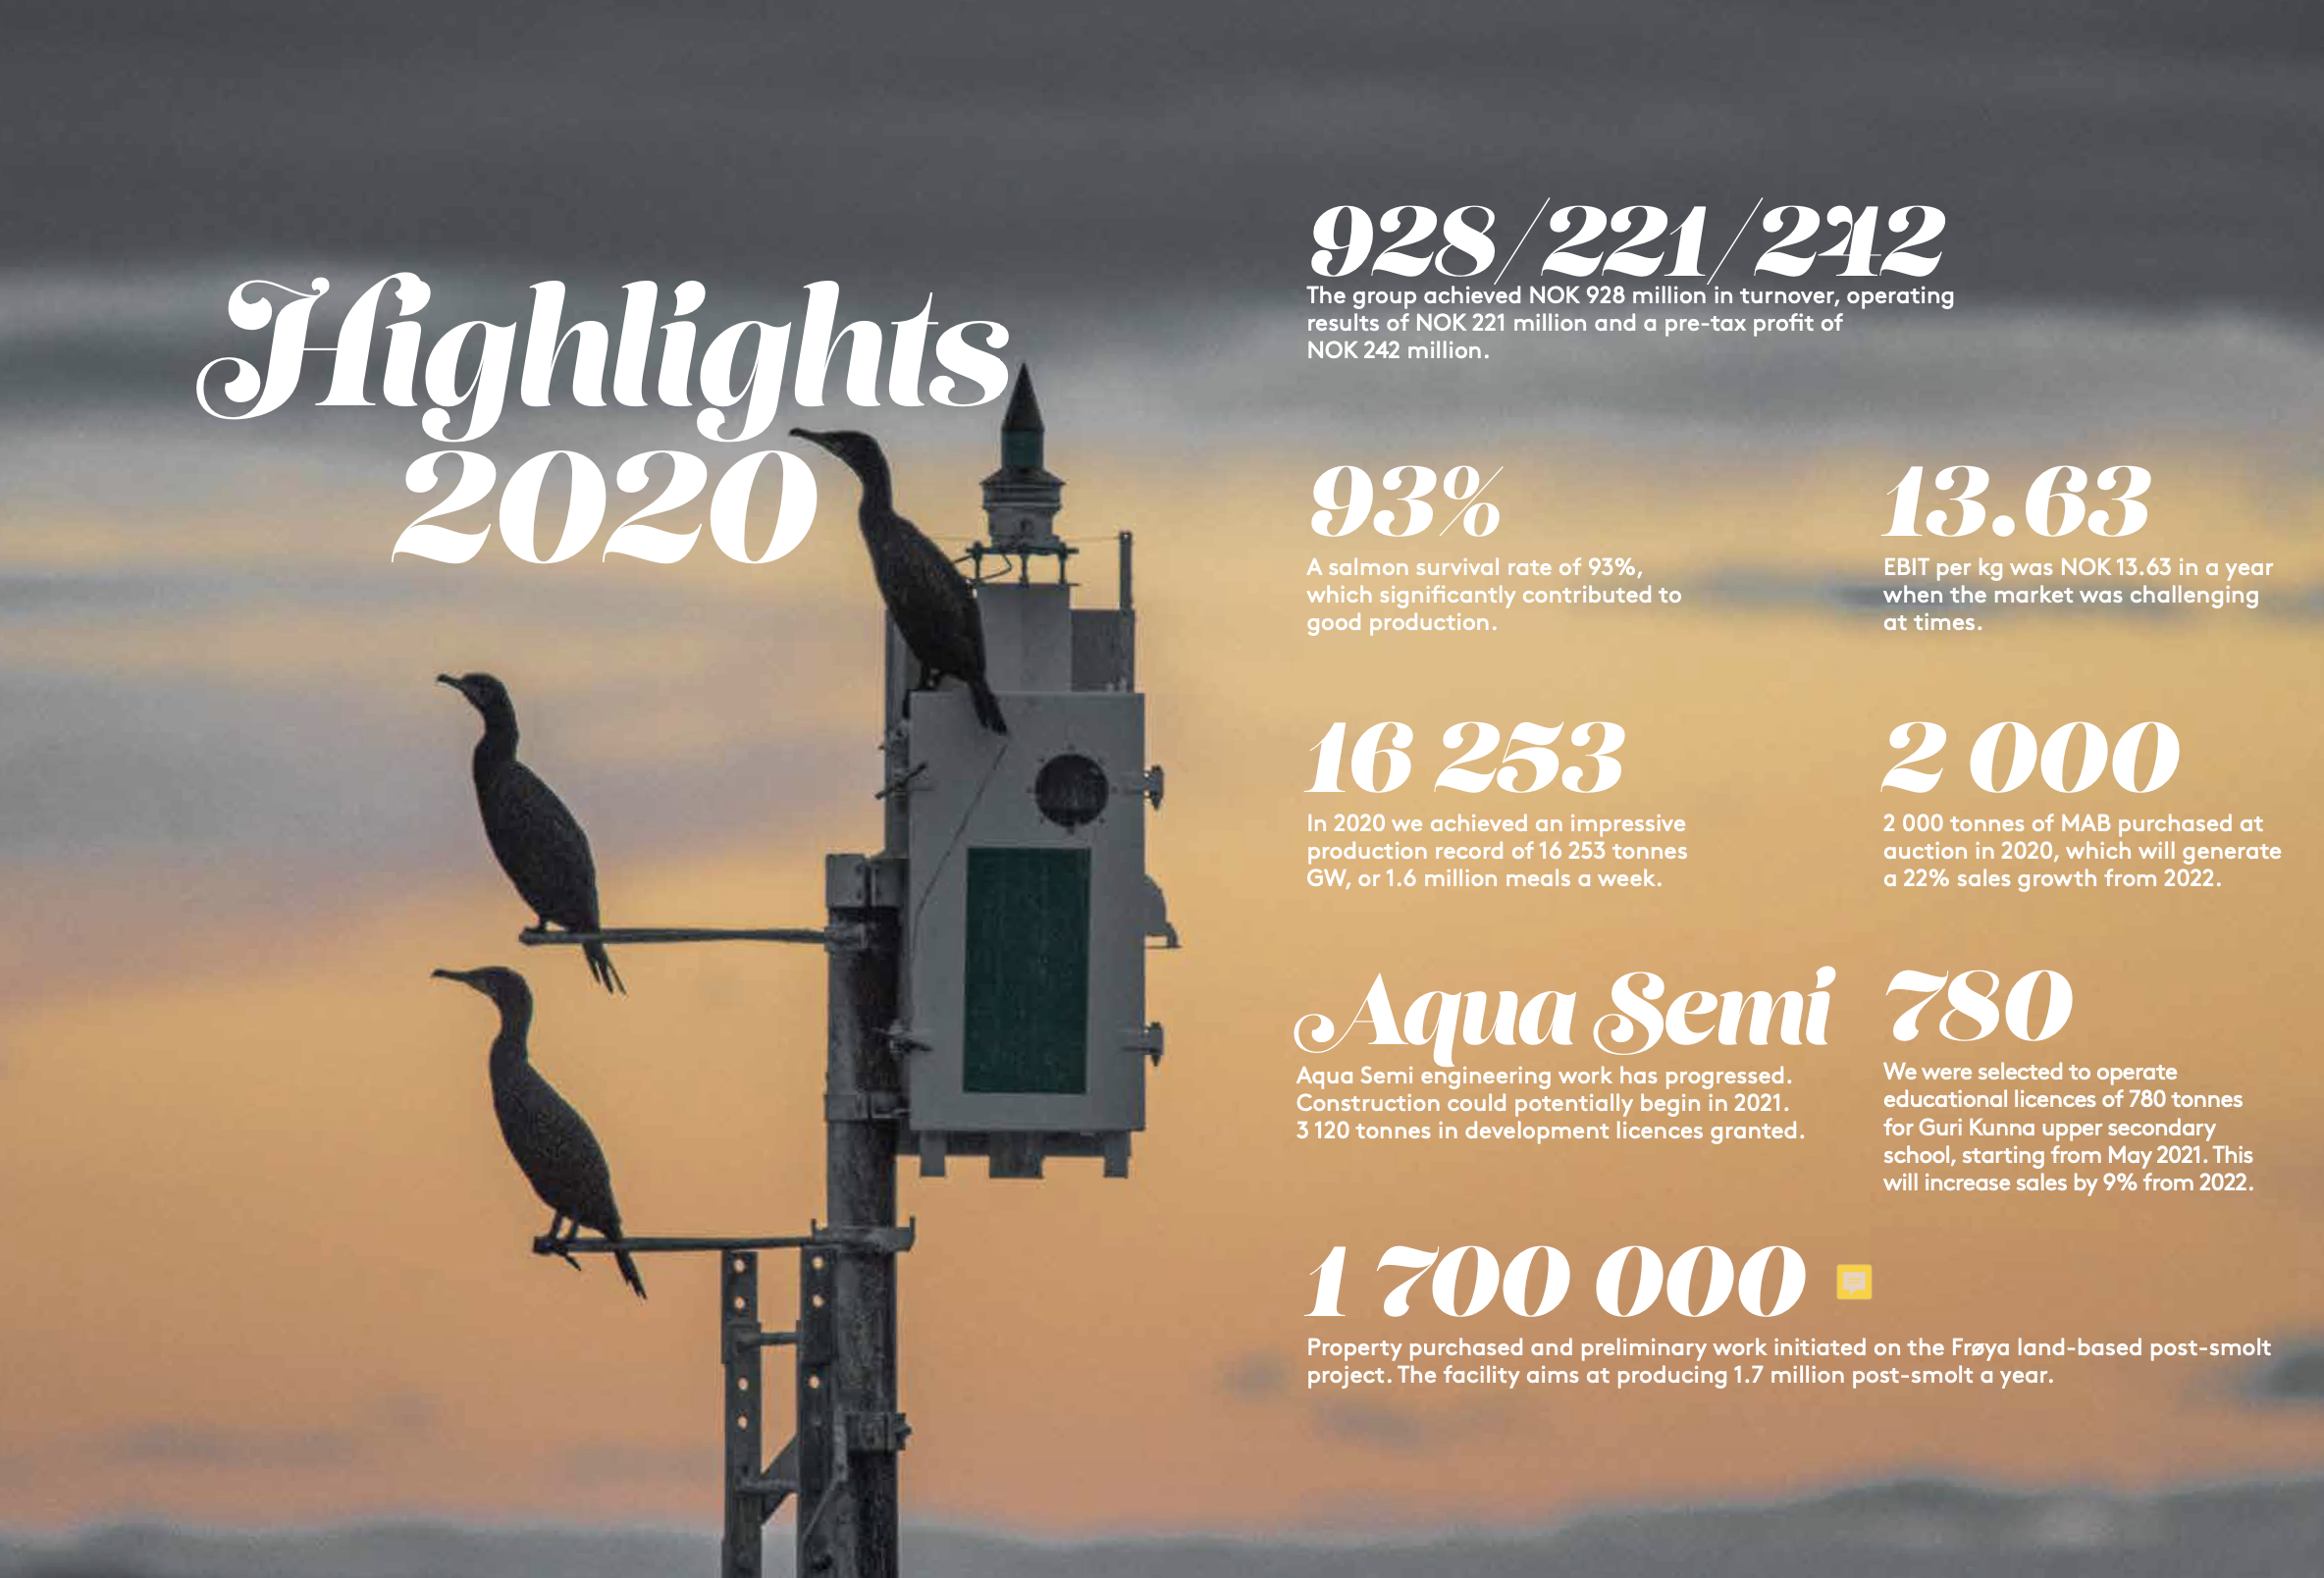 Måsøval's annual report for 2020: Continued growth in a challenging year